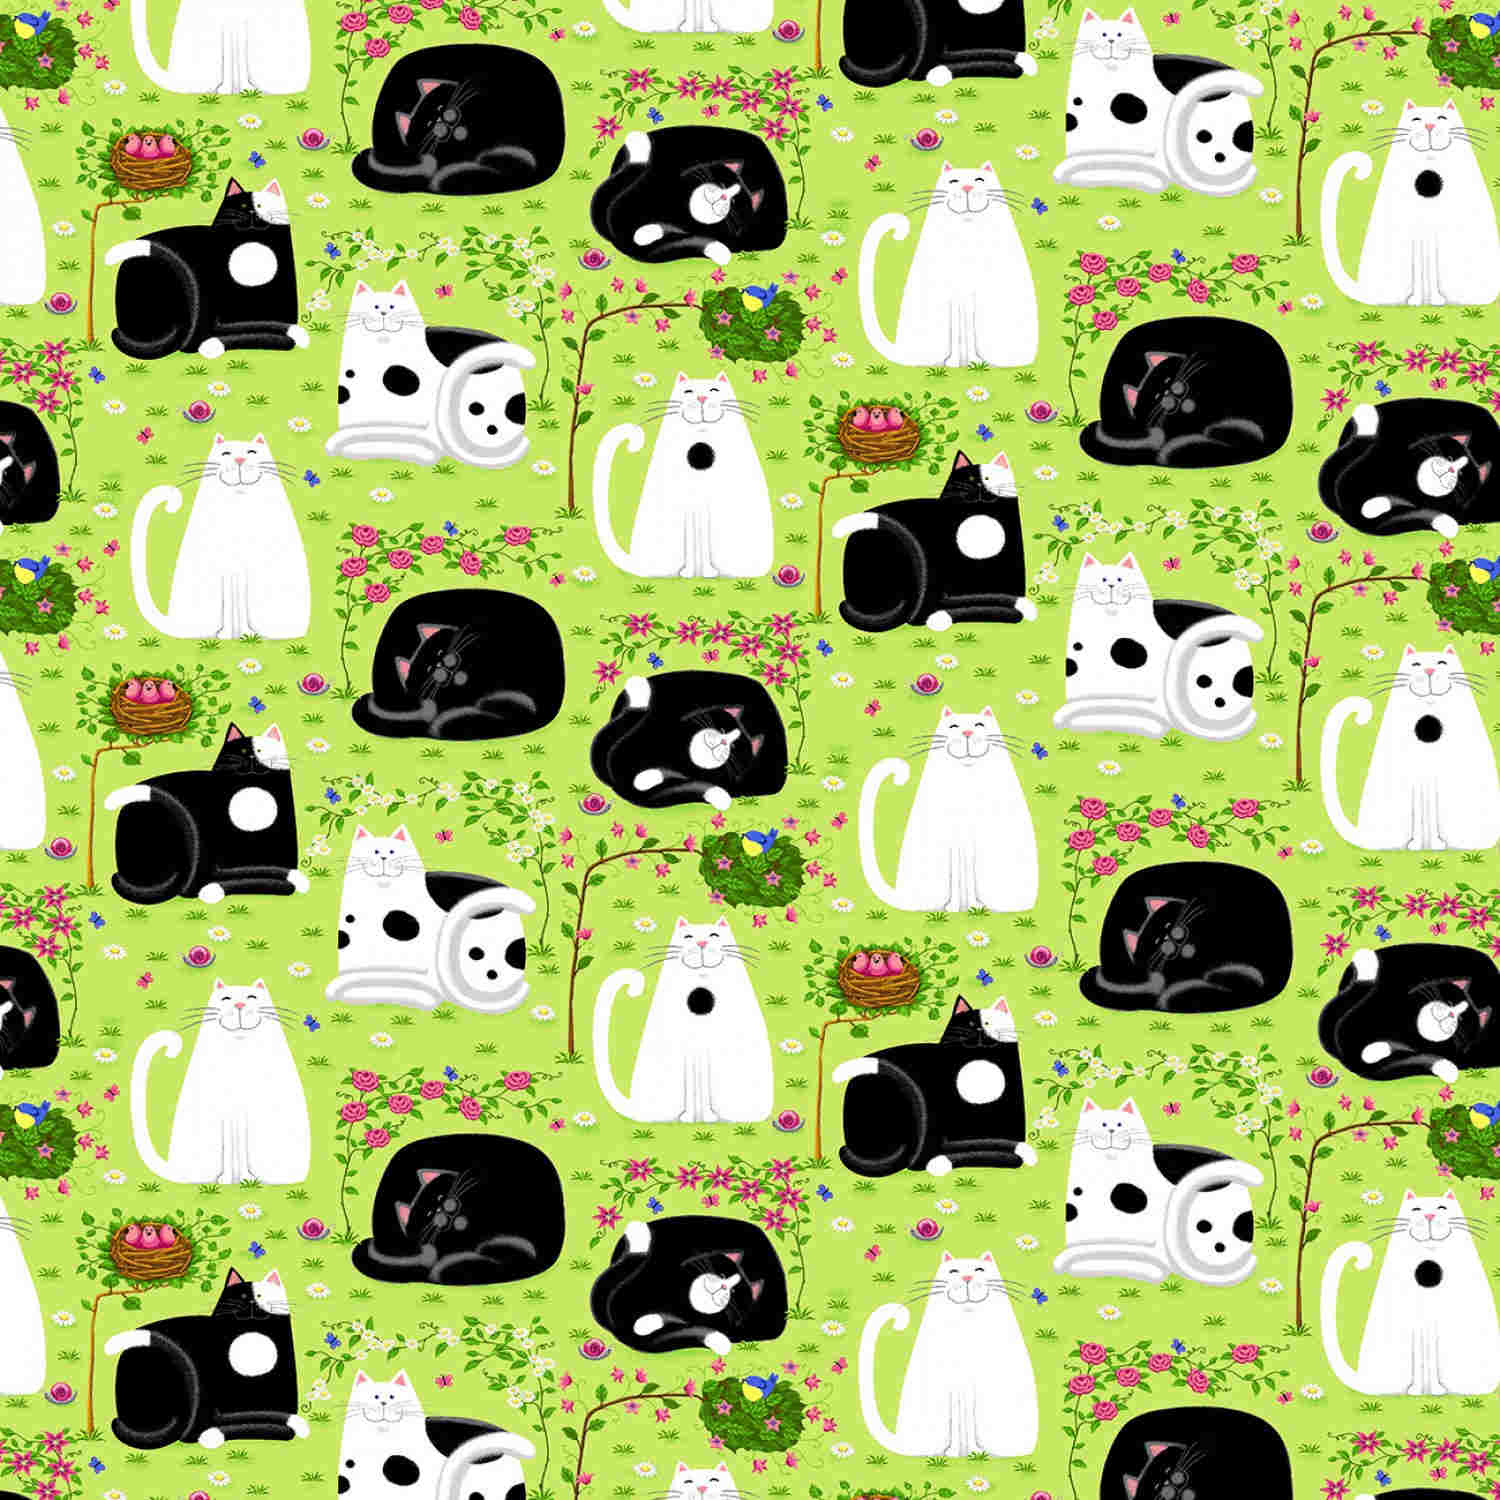 Day Dreamers Lemon Grass Cat Dreamers By Henry Glass Cotton Quilting Fabric